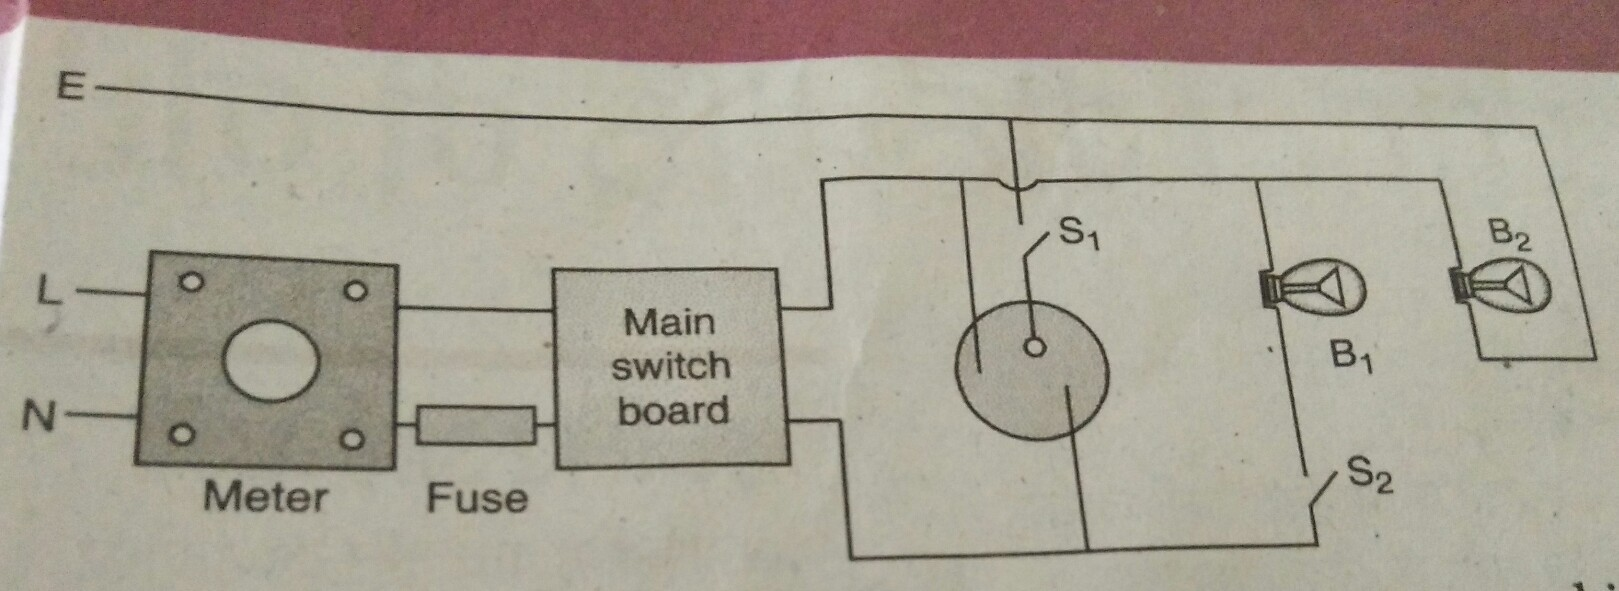 the given figure shows a domestic electric circuit study the circuit ...